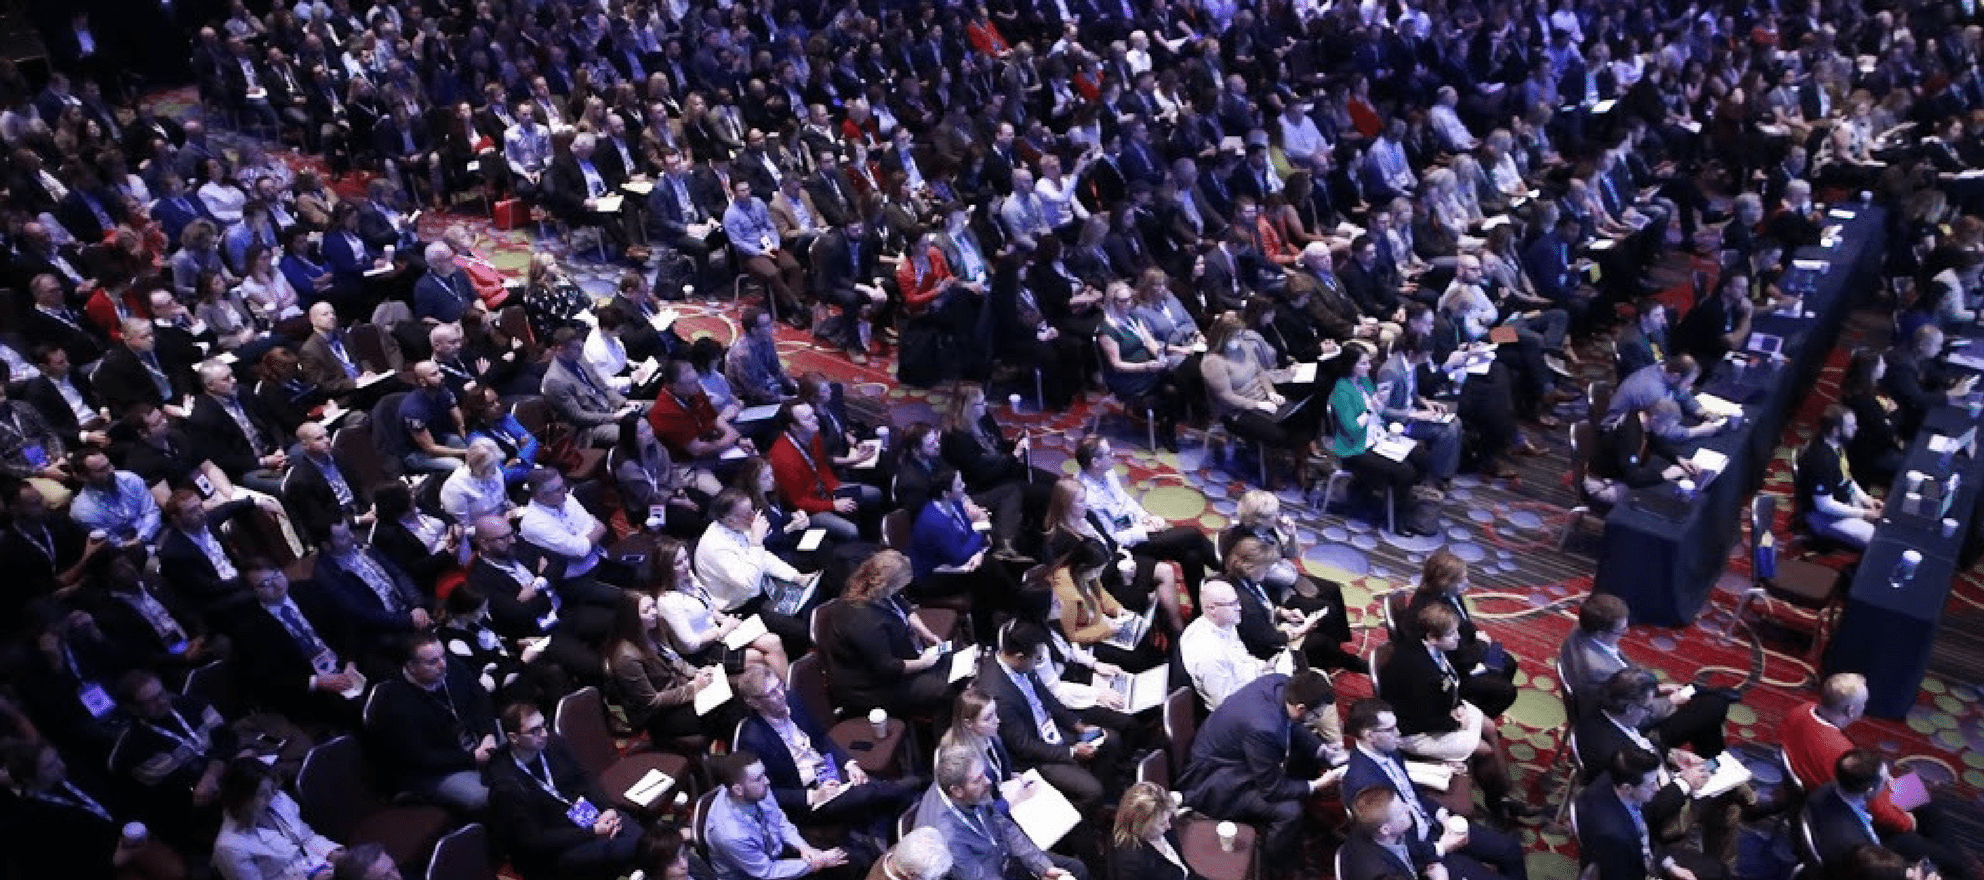 ICNY 18 day 3 recap: All of our Wednesday coverage